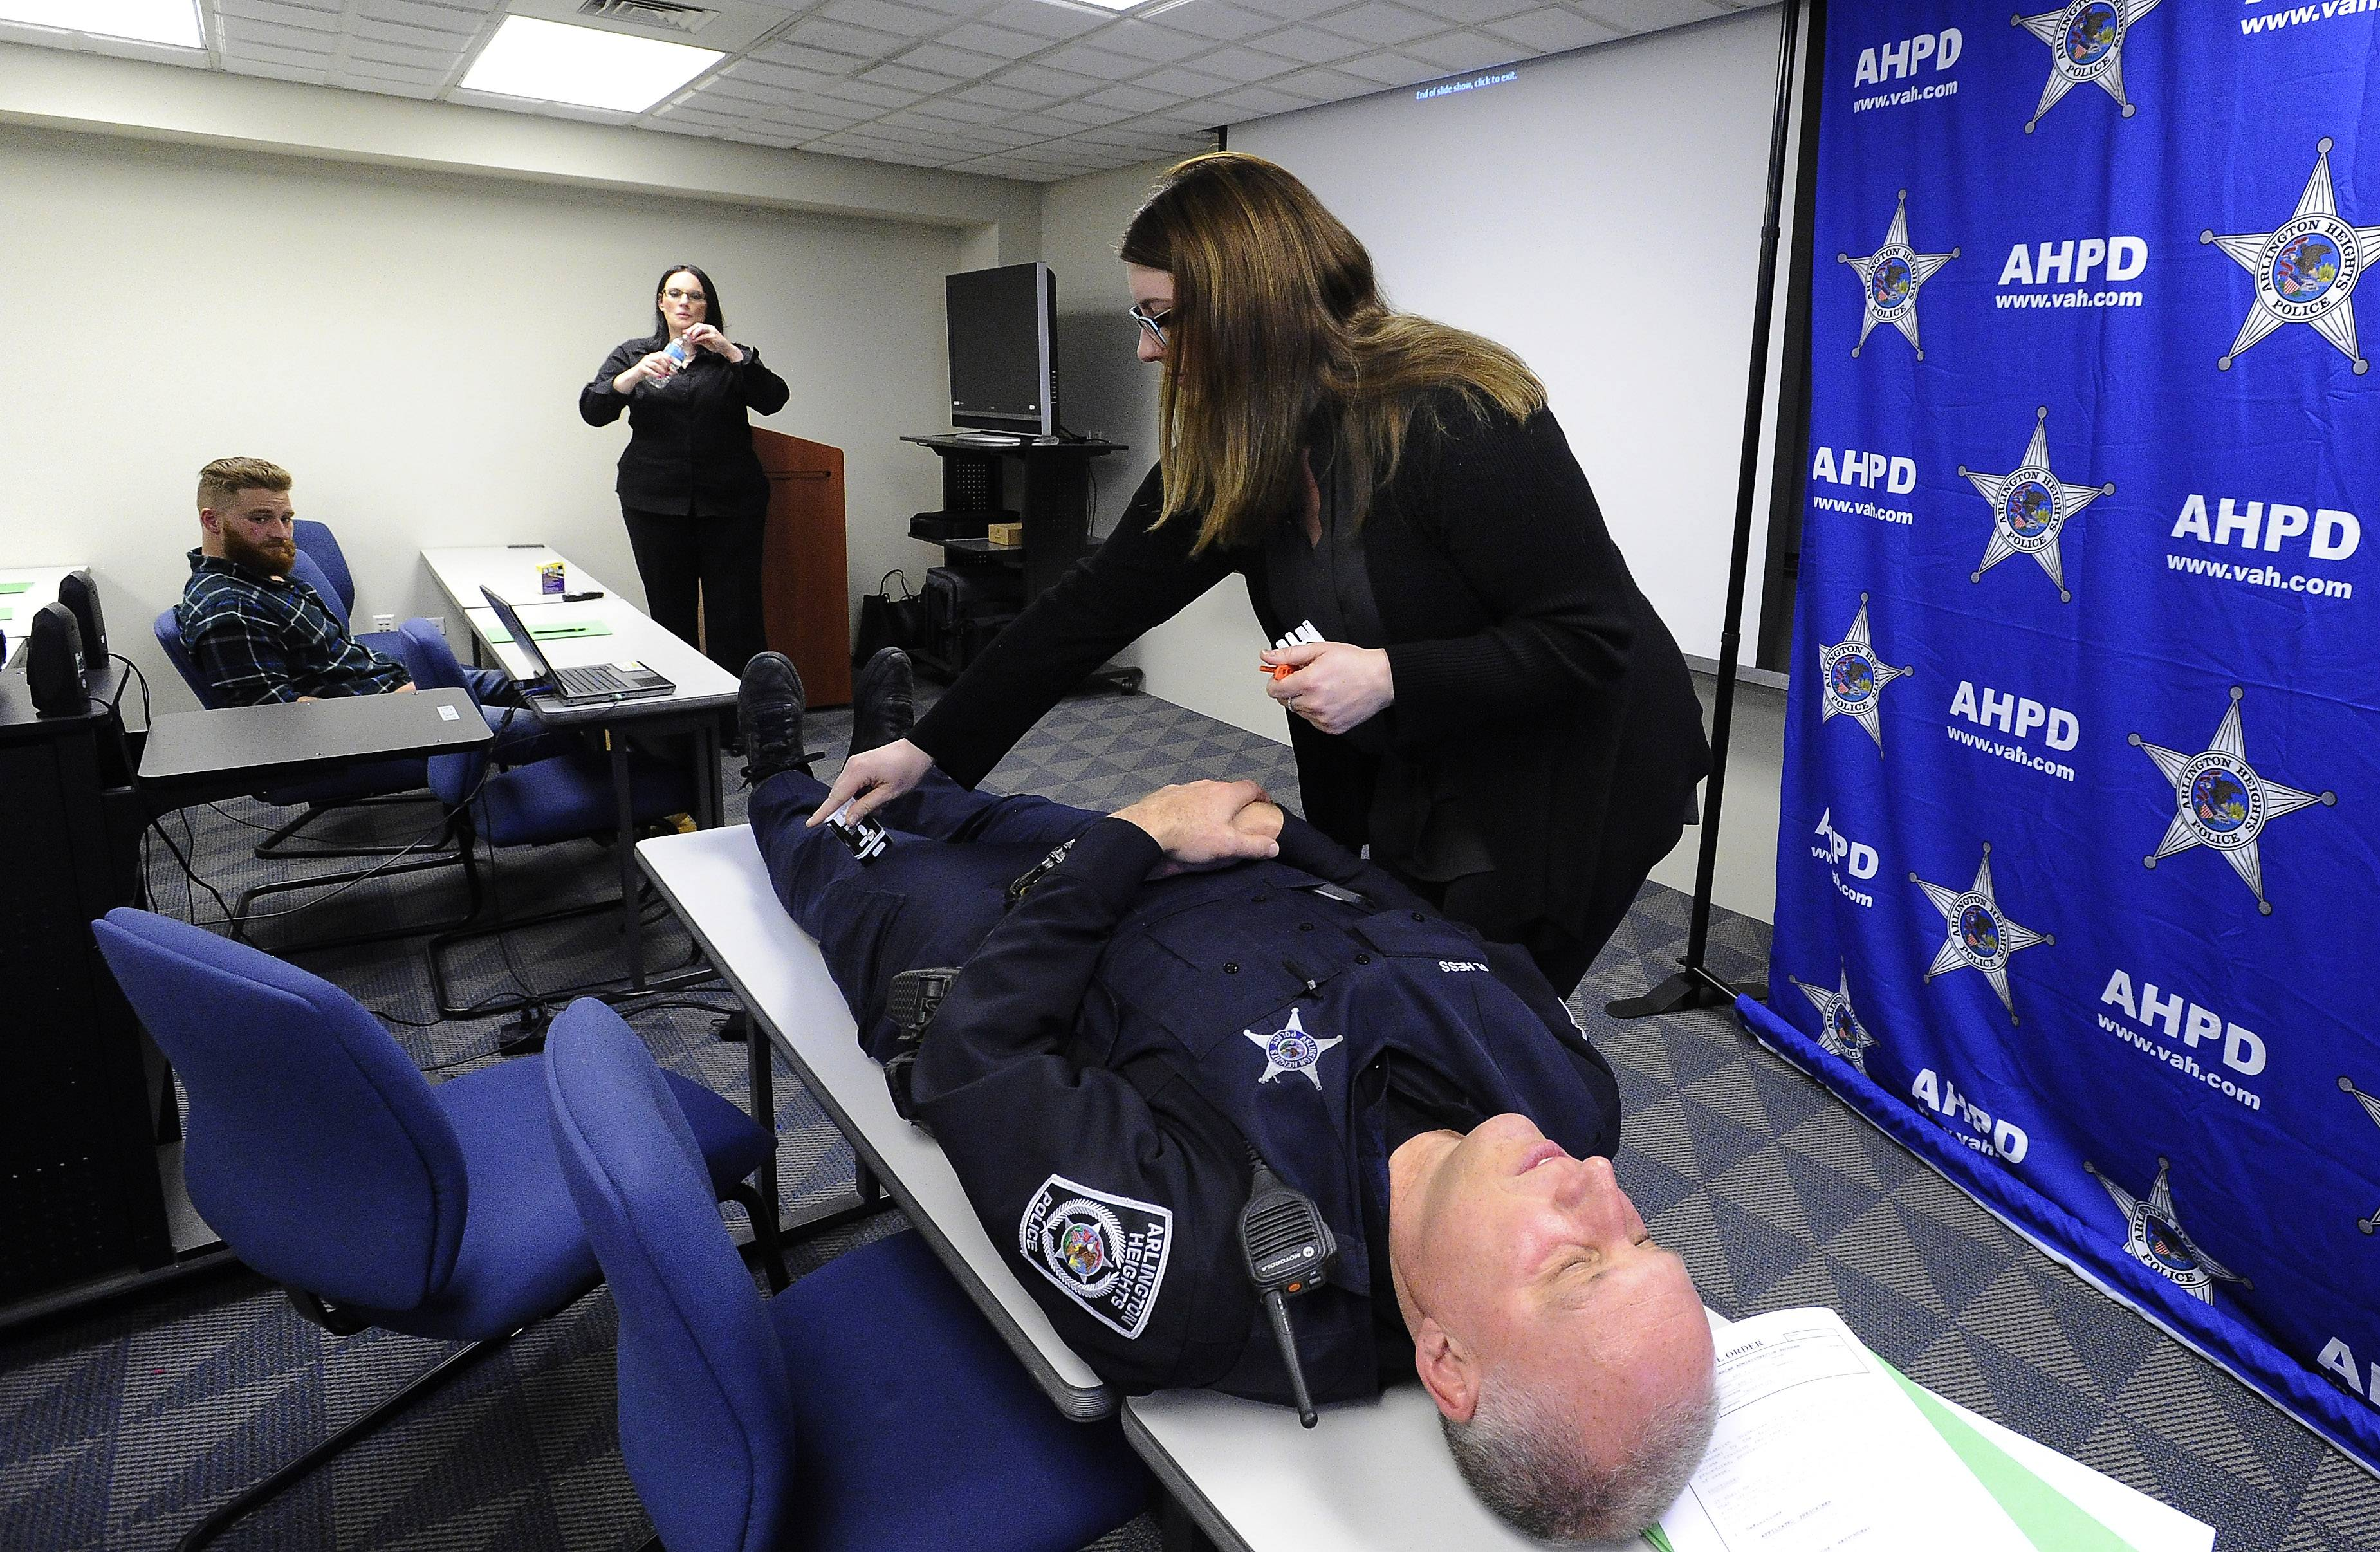 Chelsea Laliberte, executive director/co-founder of Live 4 Lali organization, uses Arlington Heights police officer Bob Hess to show where to inject a heroin antidote.